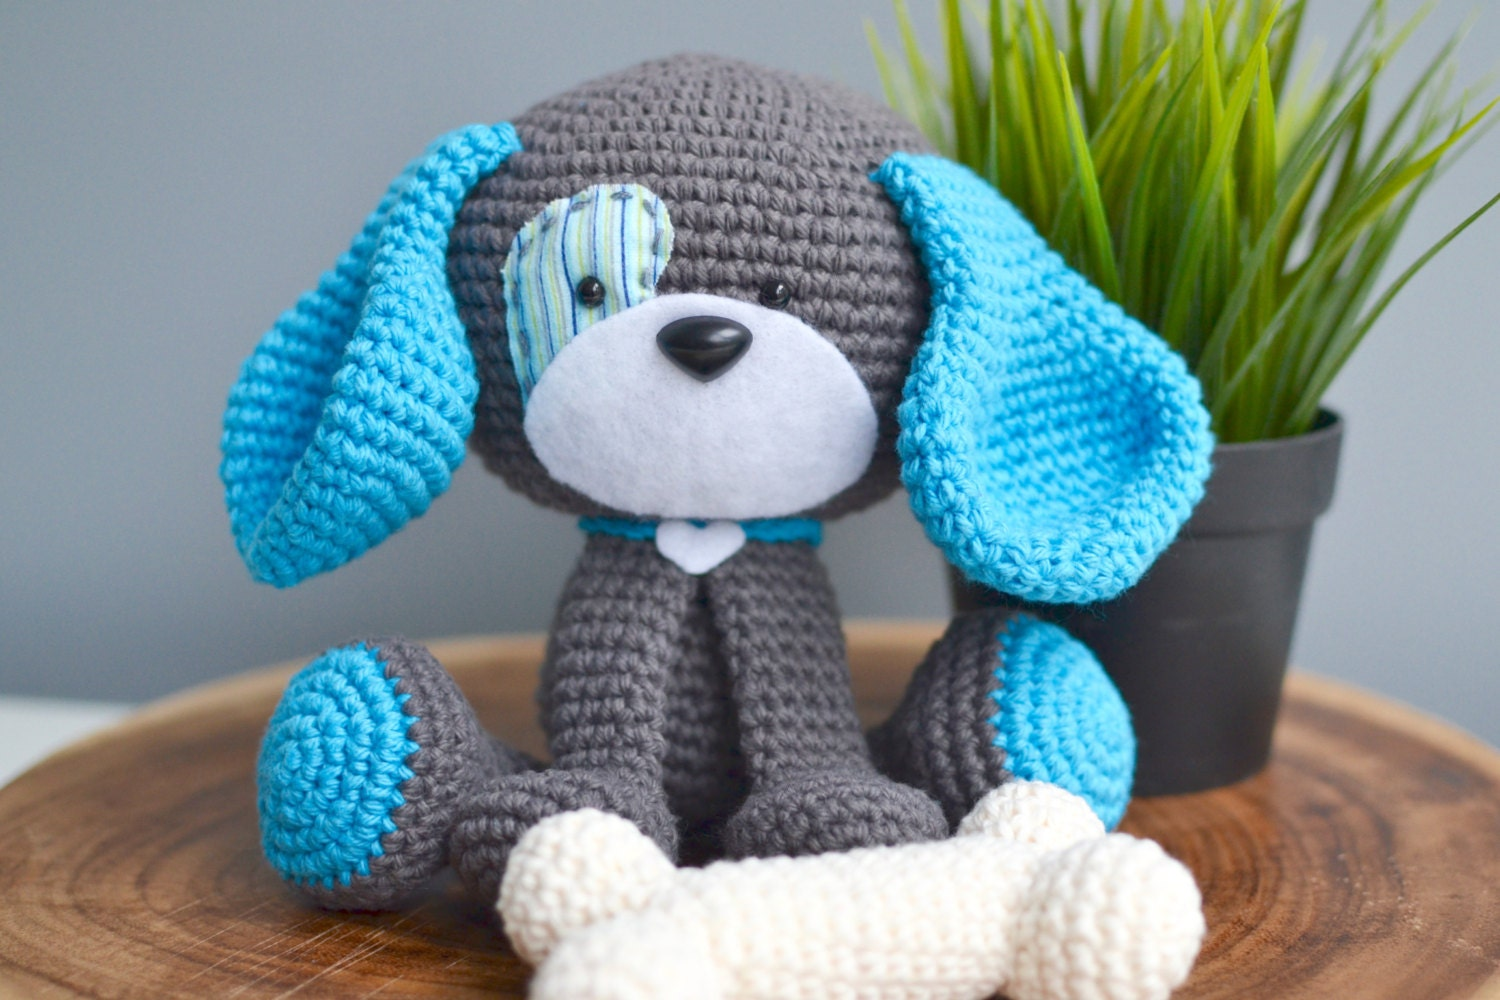 Amigurumi Pug Dog Pattern : Cute Dog Crochet Pattern. Domino The Dog Amigurumi Crochet